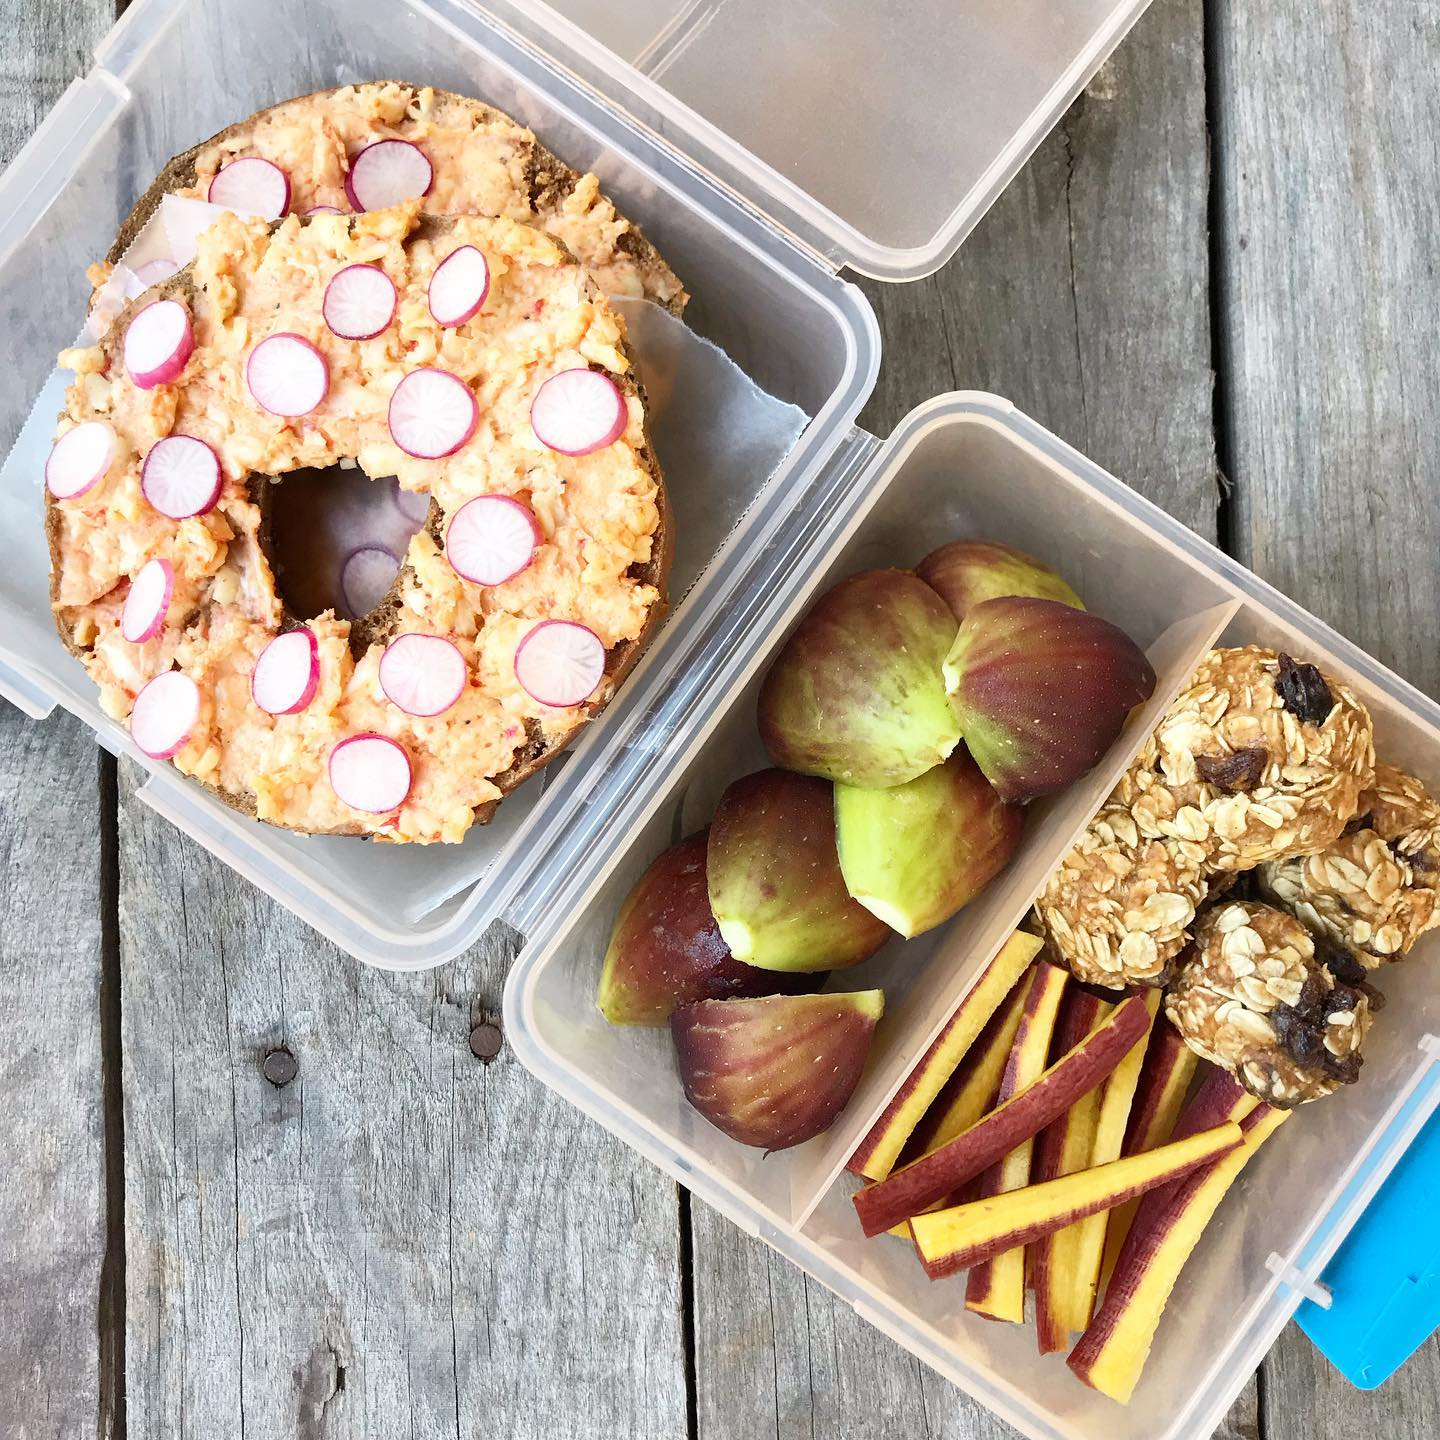 school lunch with bagel and cream cheese, figs, and energy bites from 100 days of real food